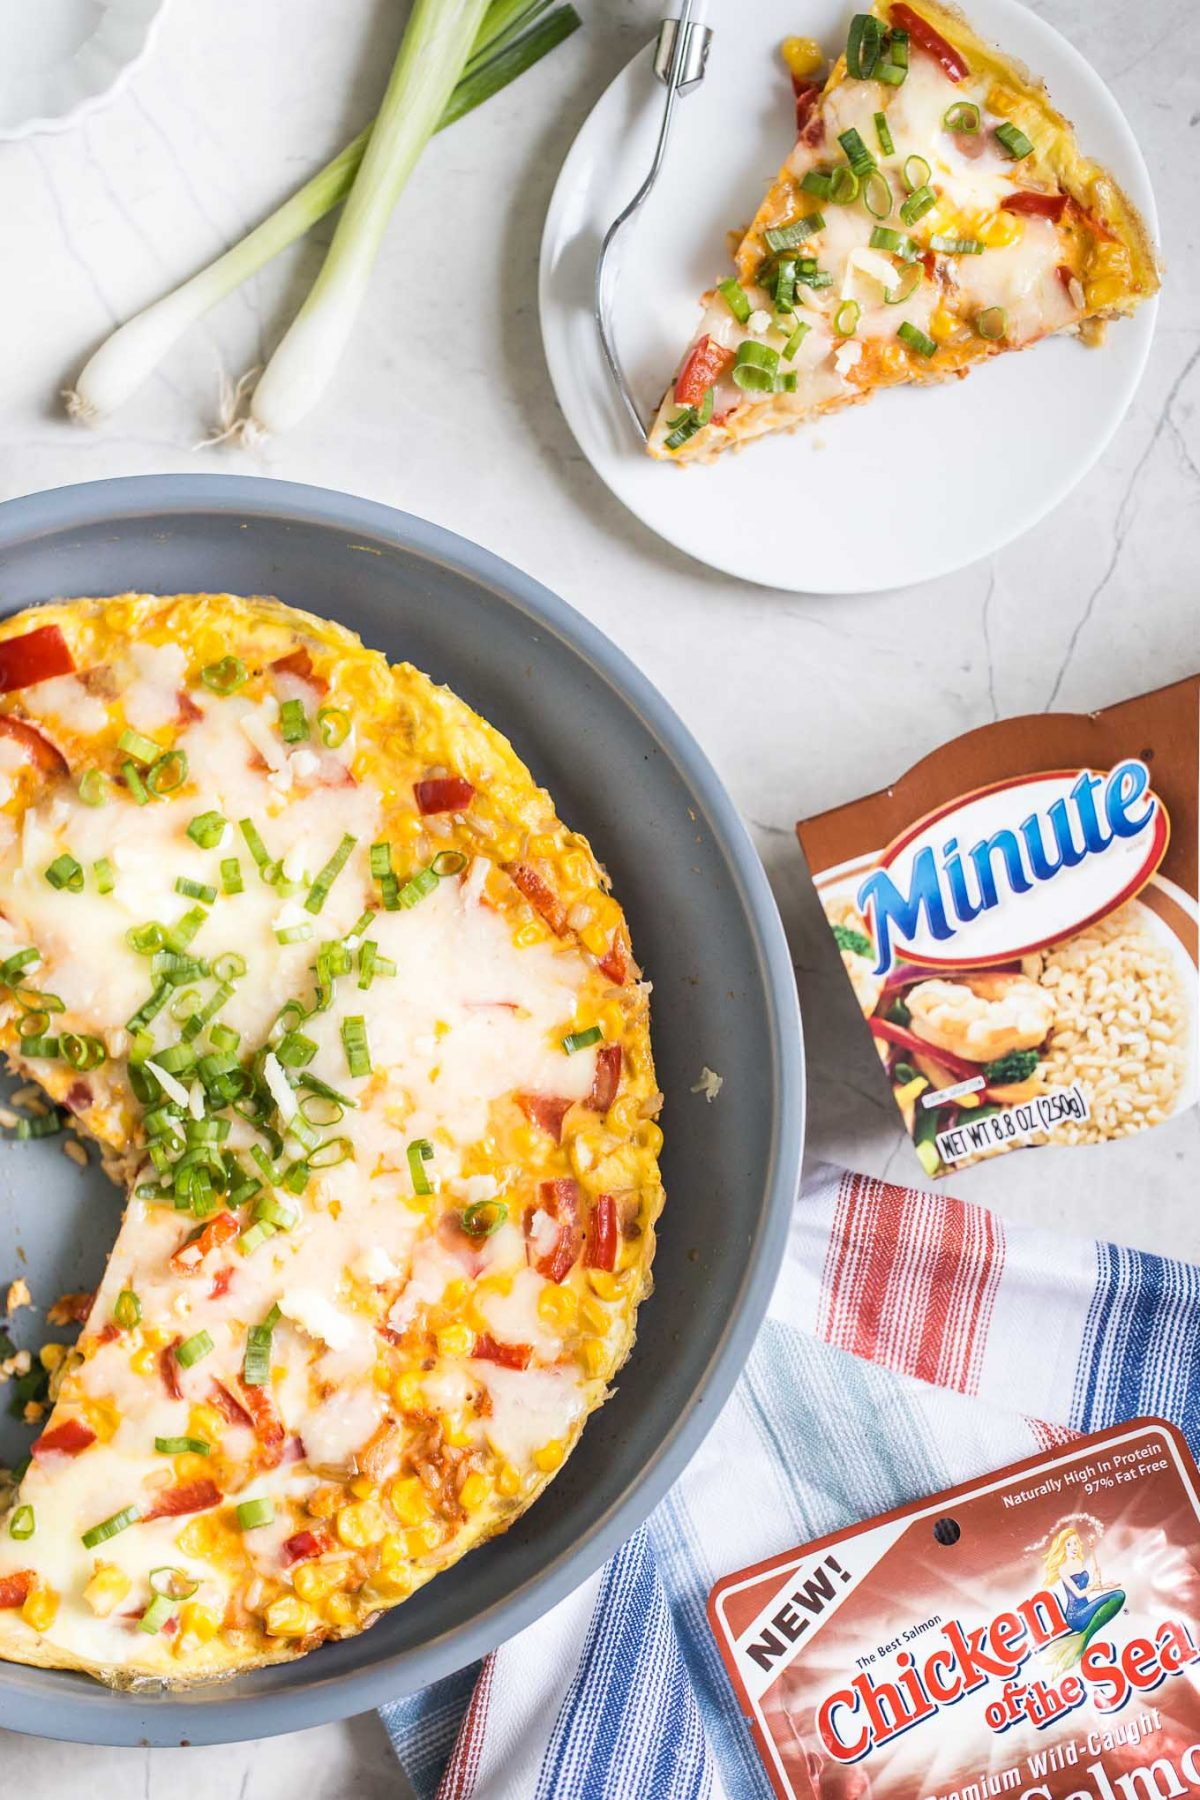 Southwestern Frittata Recipe- Here's how to make an easy breakfast egg frittata recipe with delicious southwestern flavor and plenty of texture! Features red pepper, corn, scallions and cheddar.